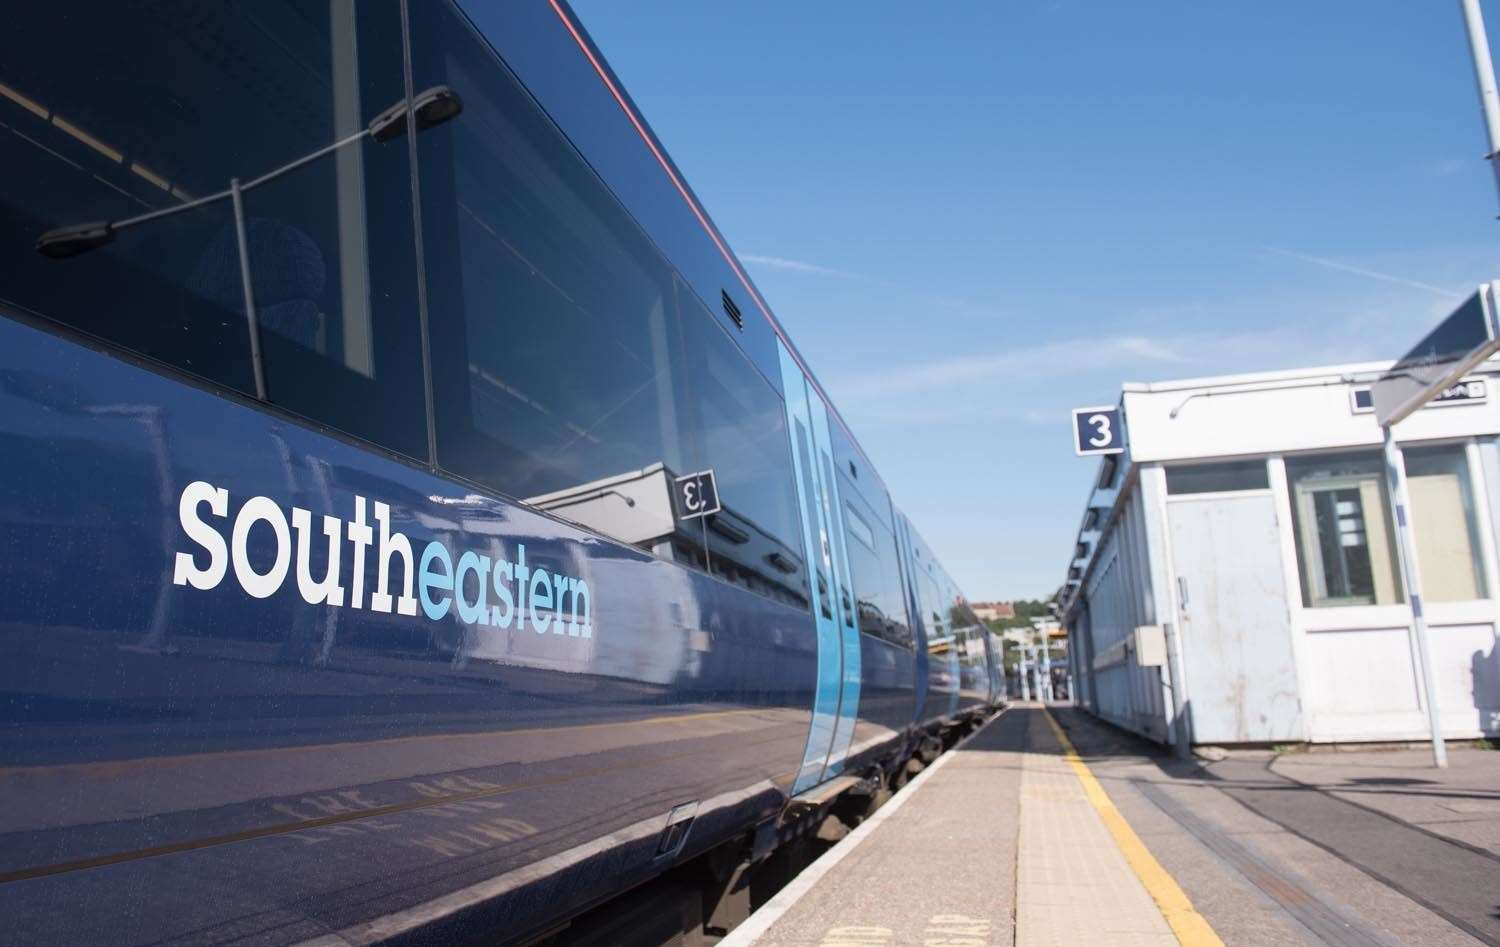 Southeastern trains are running at a reduced speed through West Malling